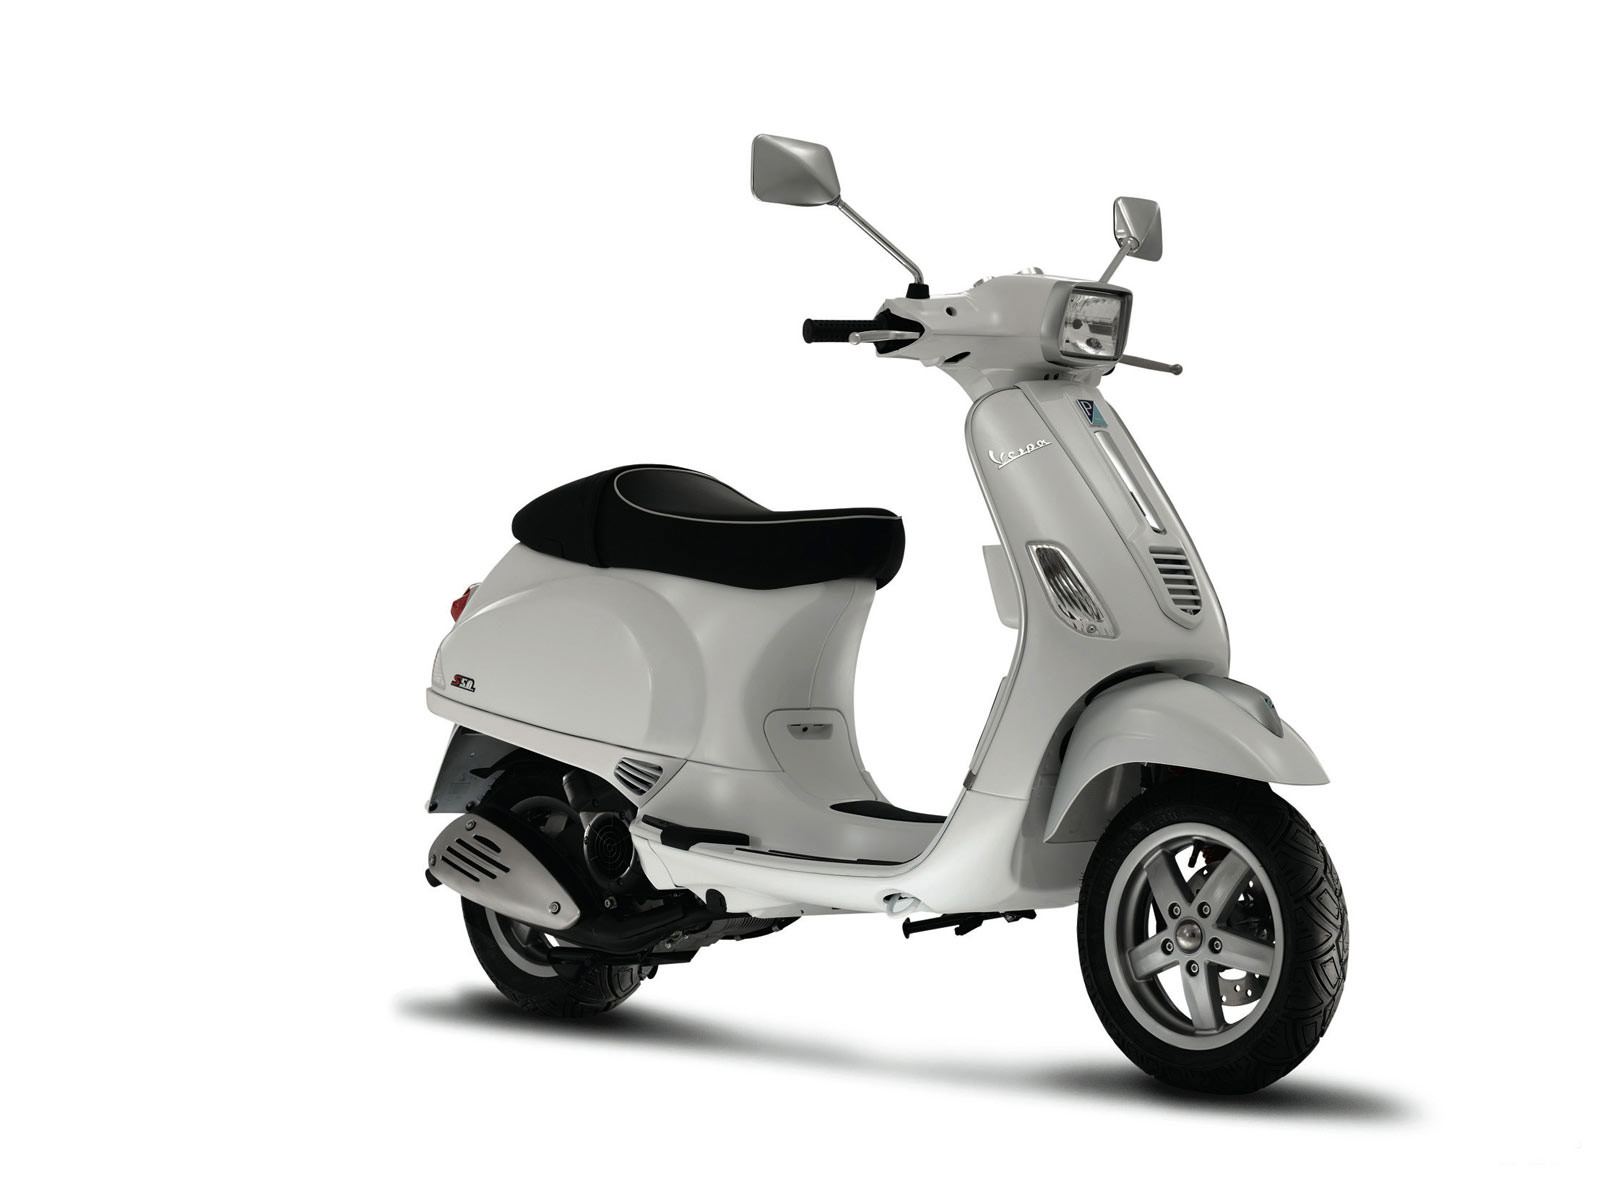 2010 vespa s50 accident lawyers information scooter pictures. Black Bedroom Furniture Sets. Home Design Ideas